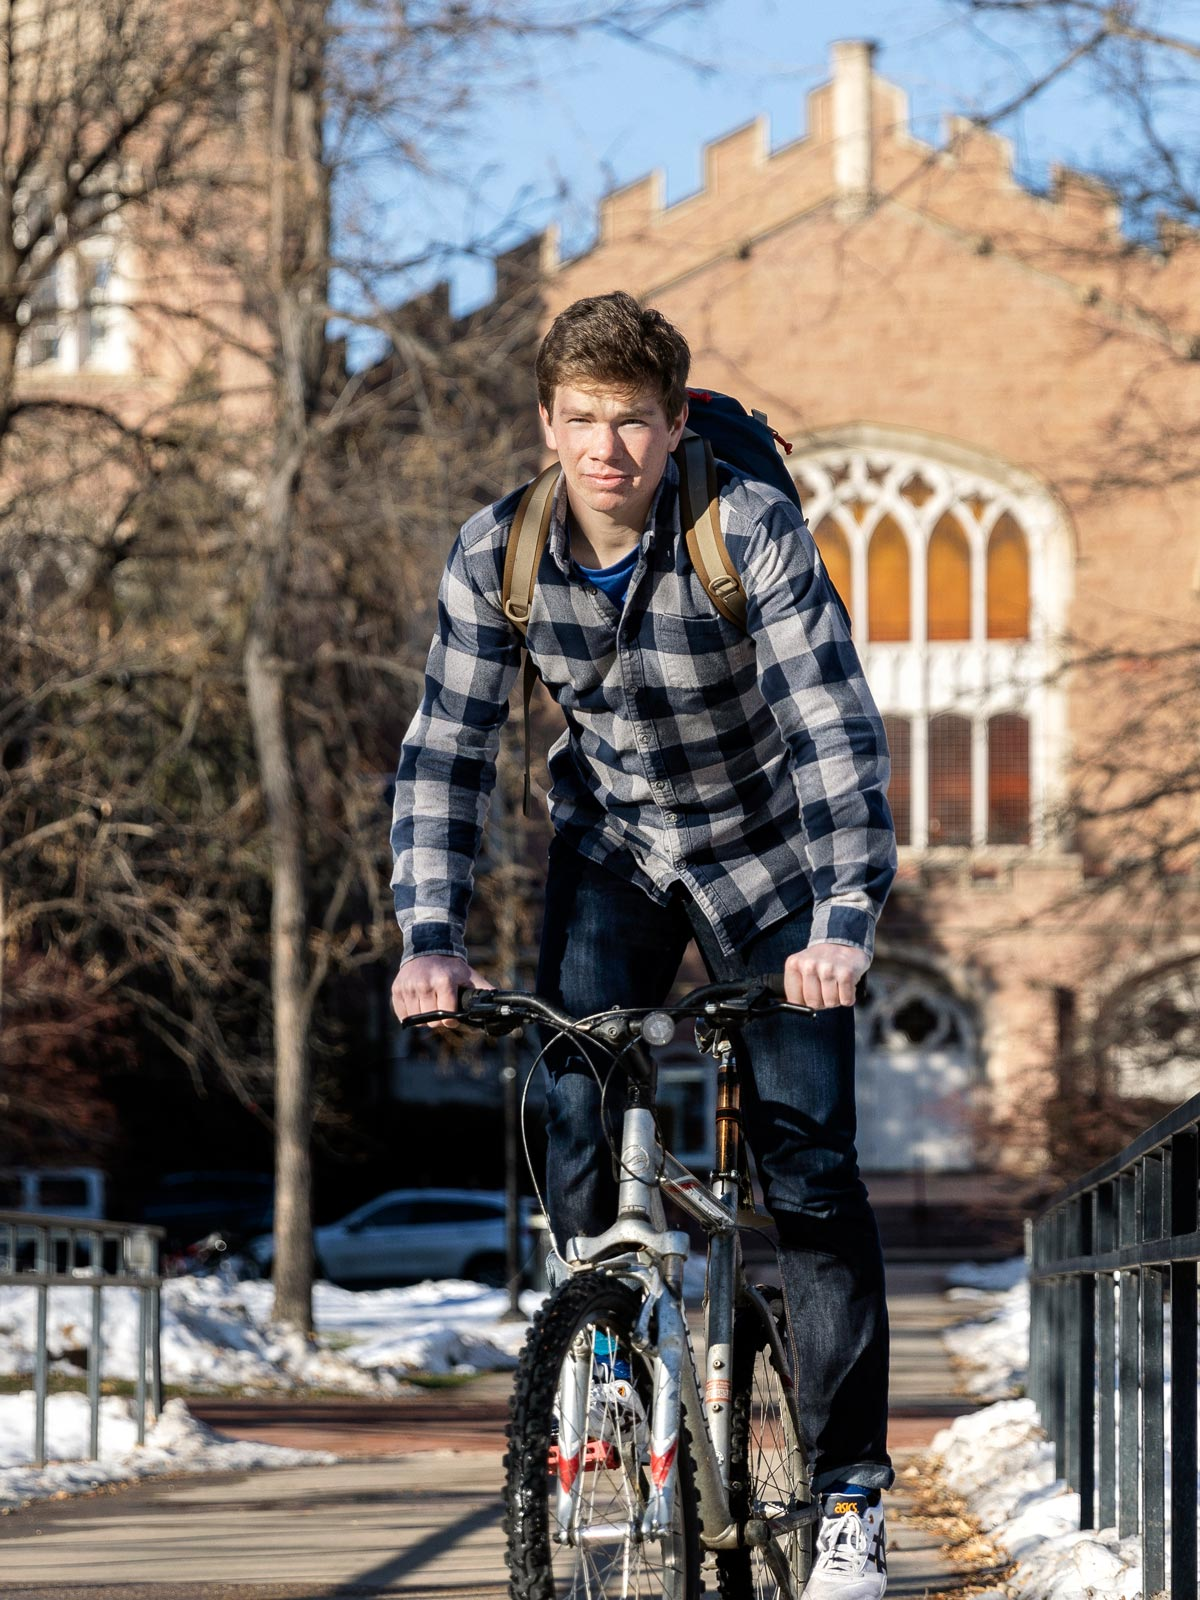 A young man on his bike riding in front of Macky Auditorium at the University of Colorado